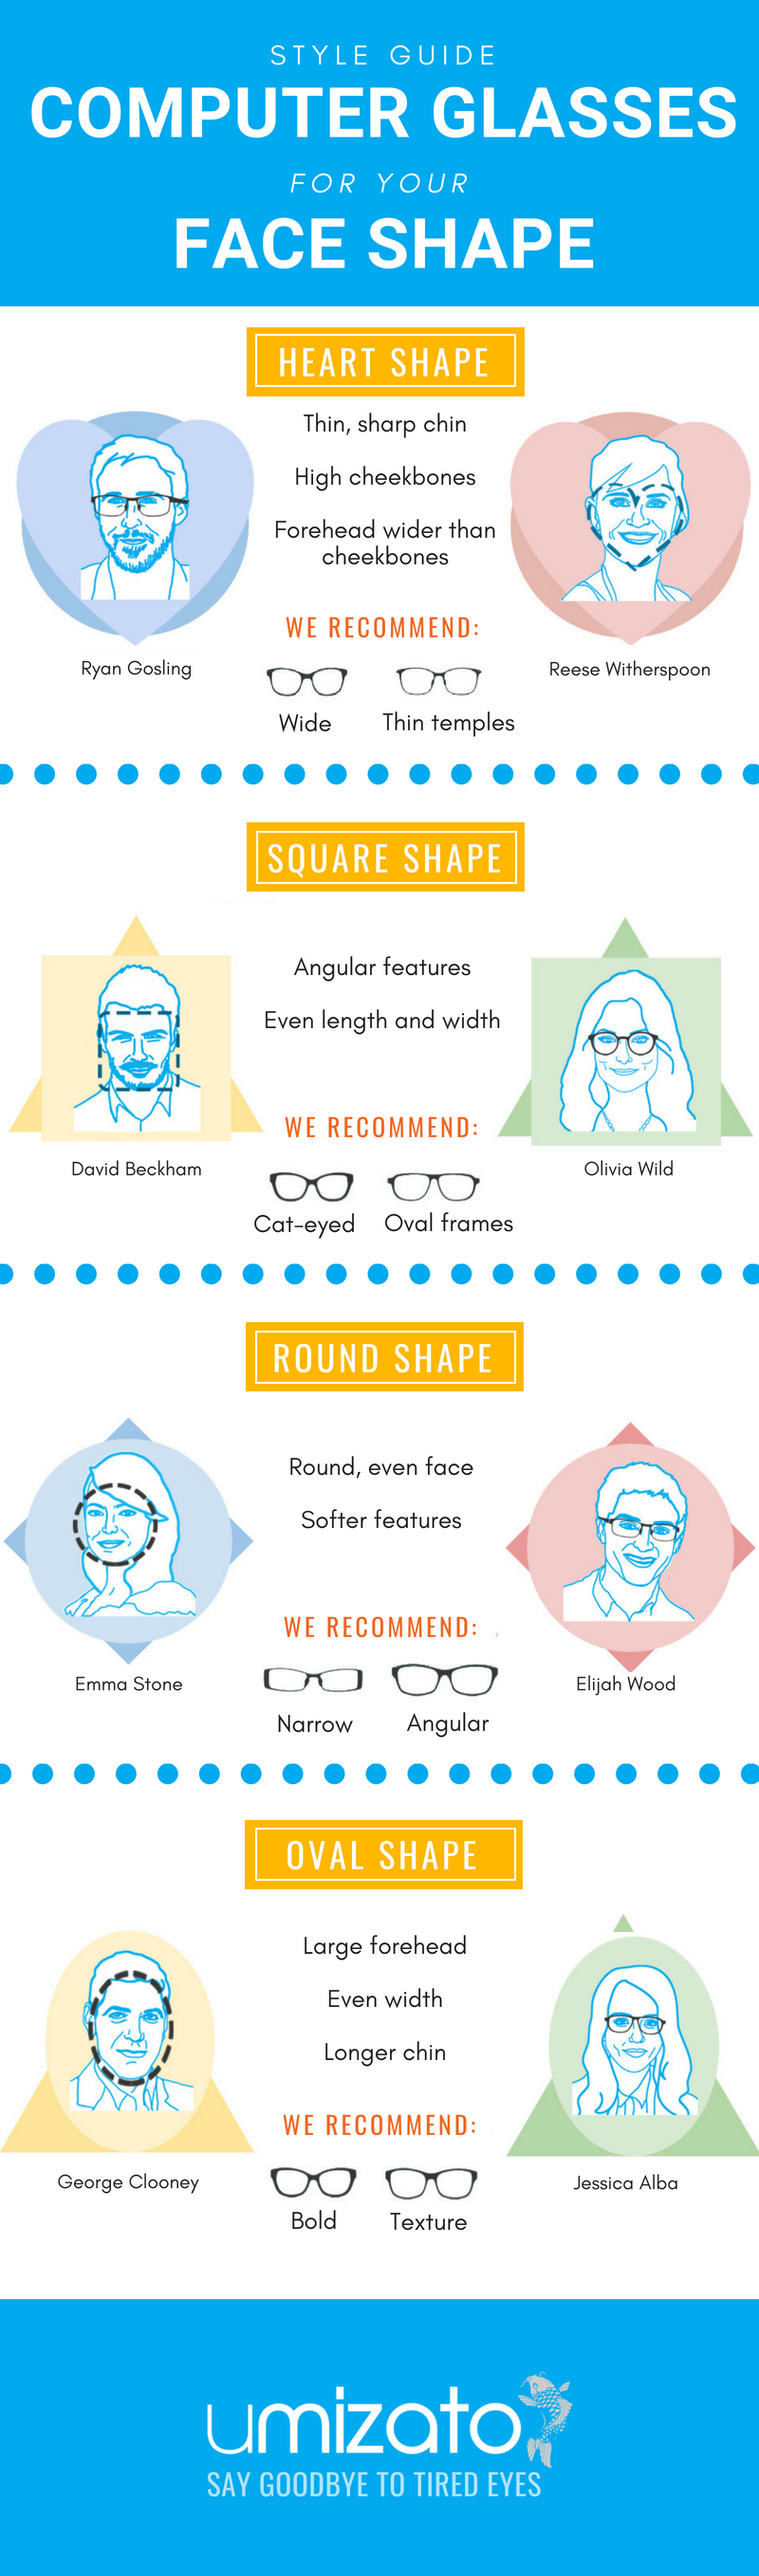 How to find the right computer glasses for your face shape infographic | Umizato